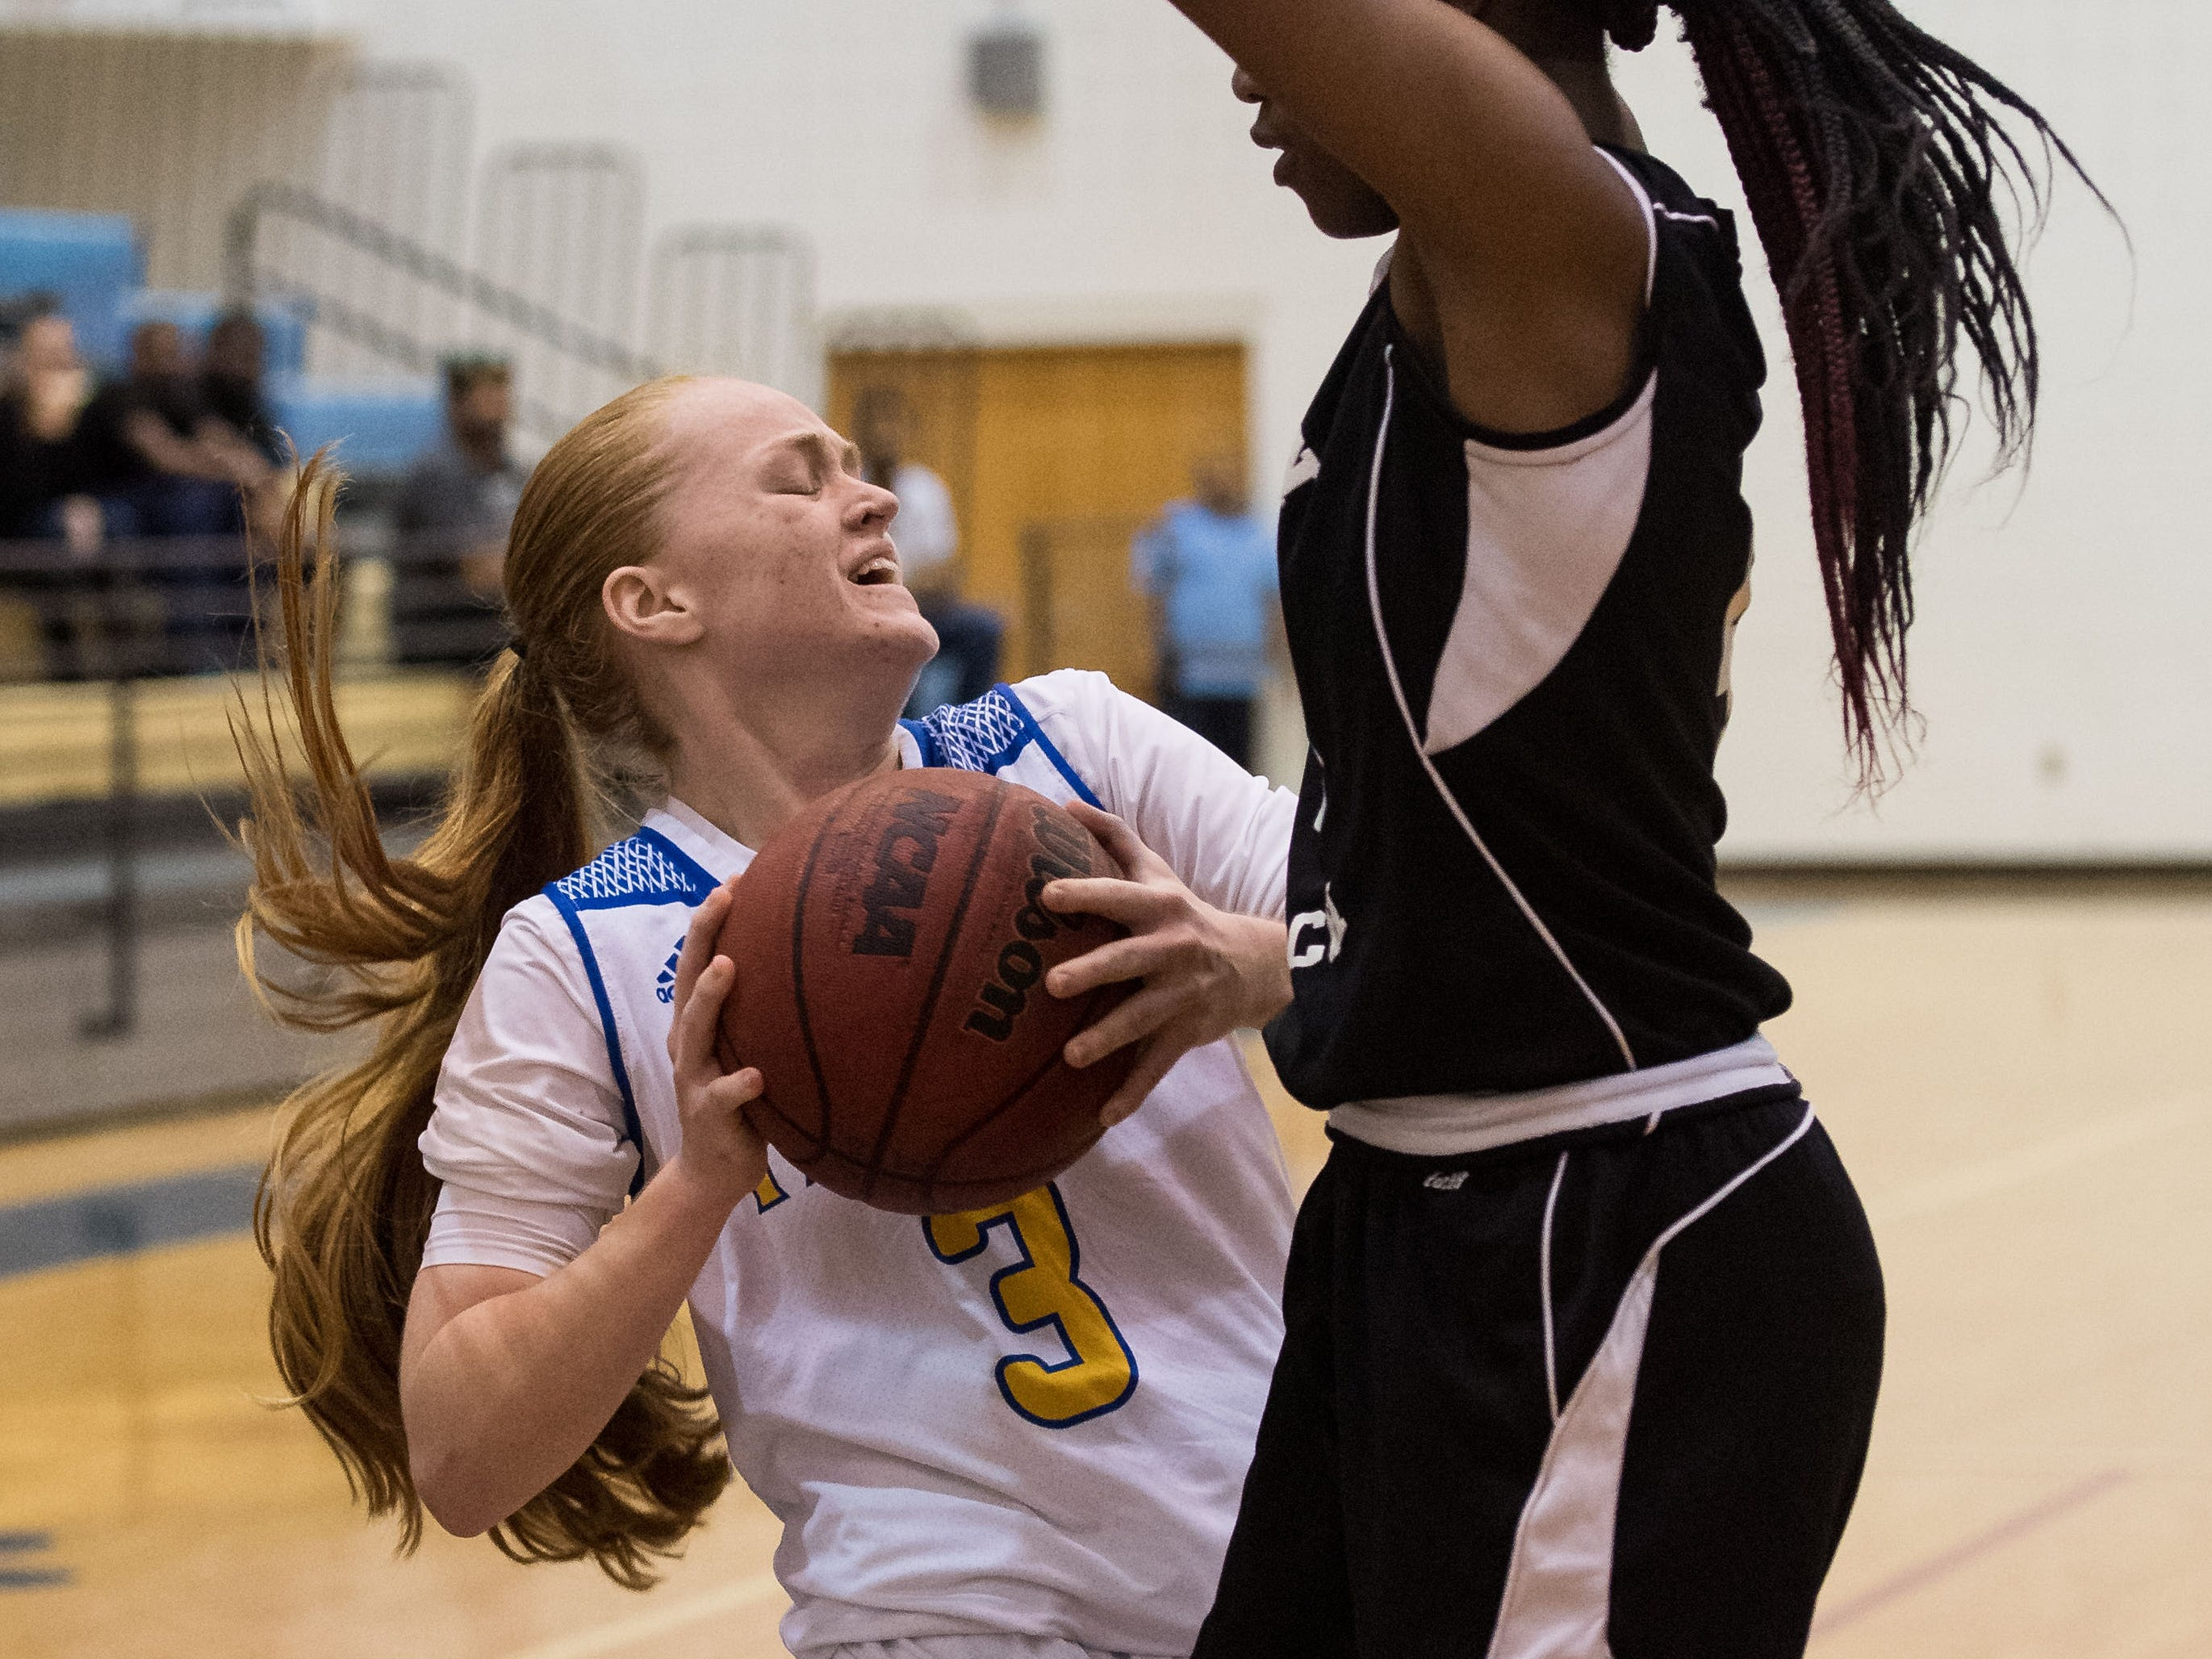 Martin County's Elise Liggett (left) comes up against a wall as Jensen Beach's Jakiya Taylor defends and eventually blocks the shot during the third period of the high school girls basketball game Tuesday, Jan. 22, 2019, at Martin County High School in Stuart.